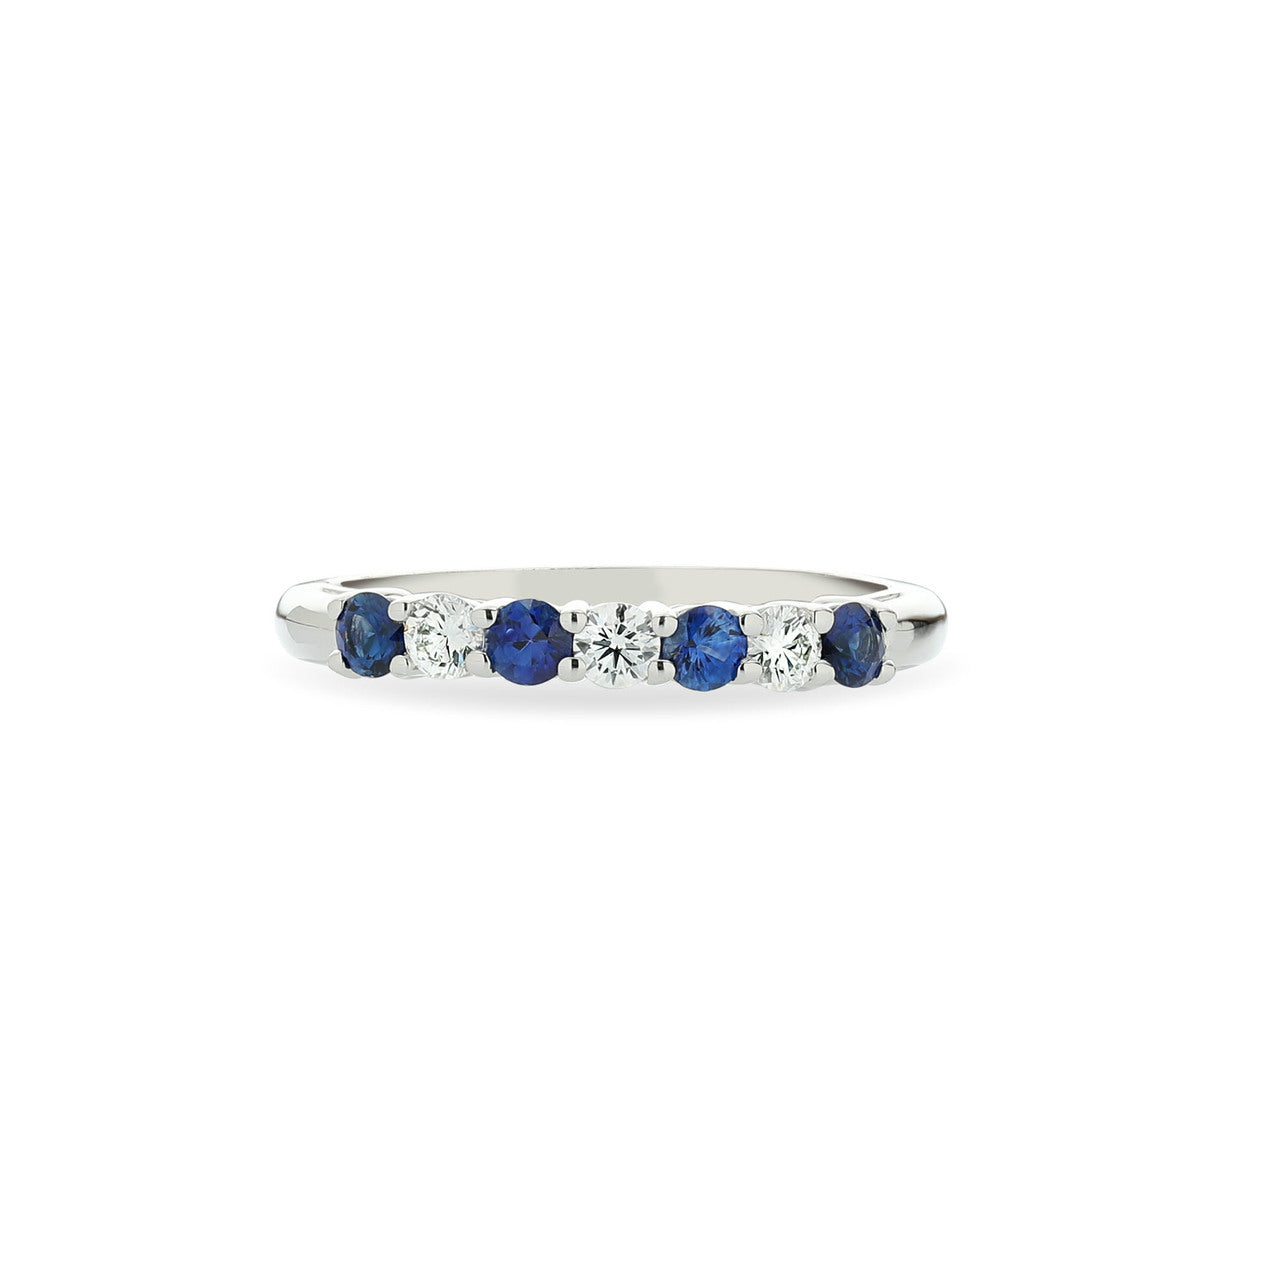 Fink's Platinum Prong Set Round Sapphire and Diamond Wedding Band